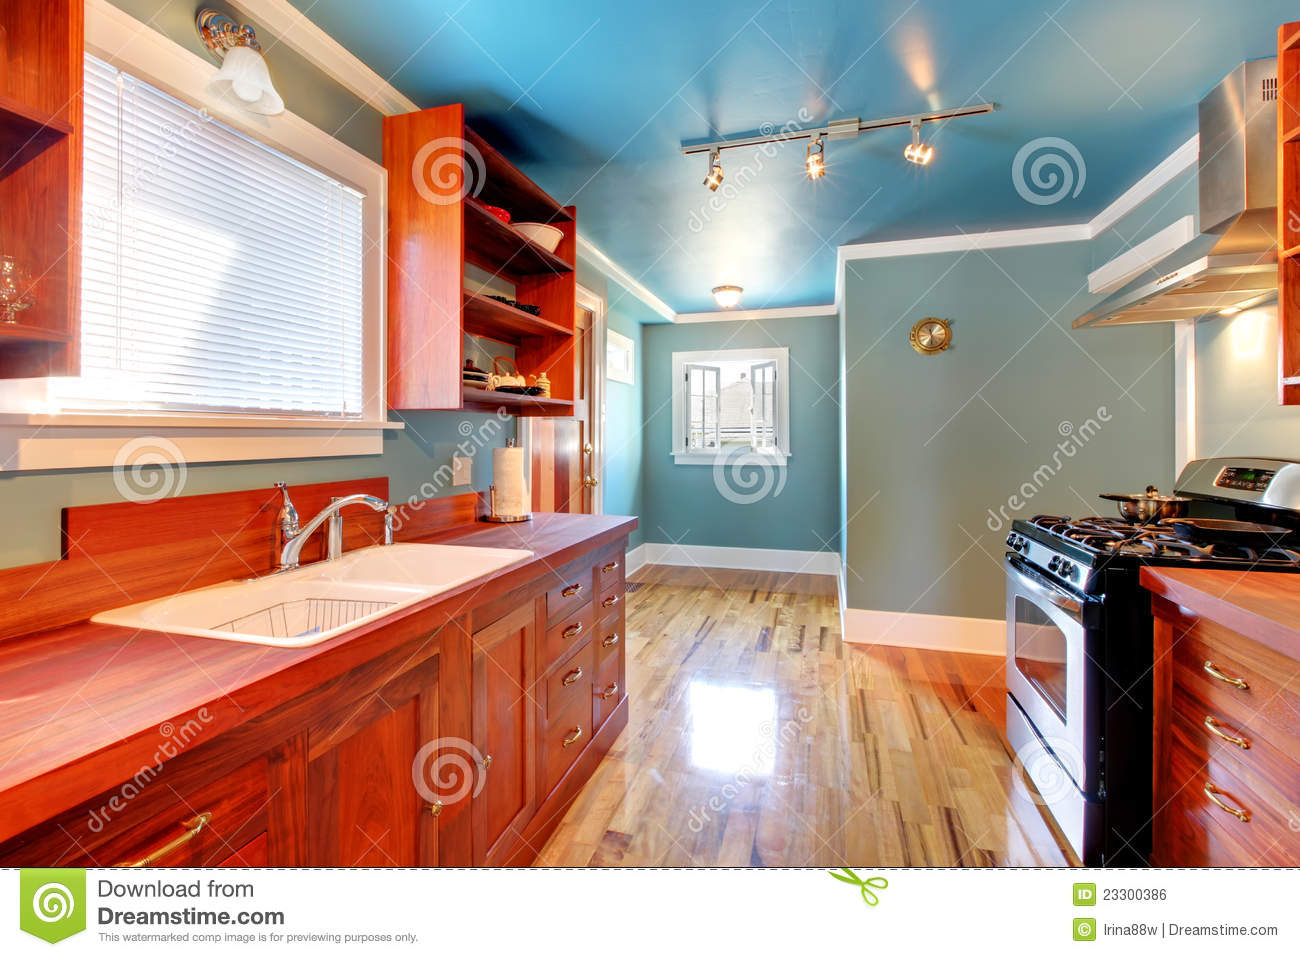 blue kitchen cherry cabinets shiny floor 23300386 jpg